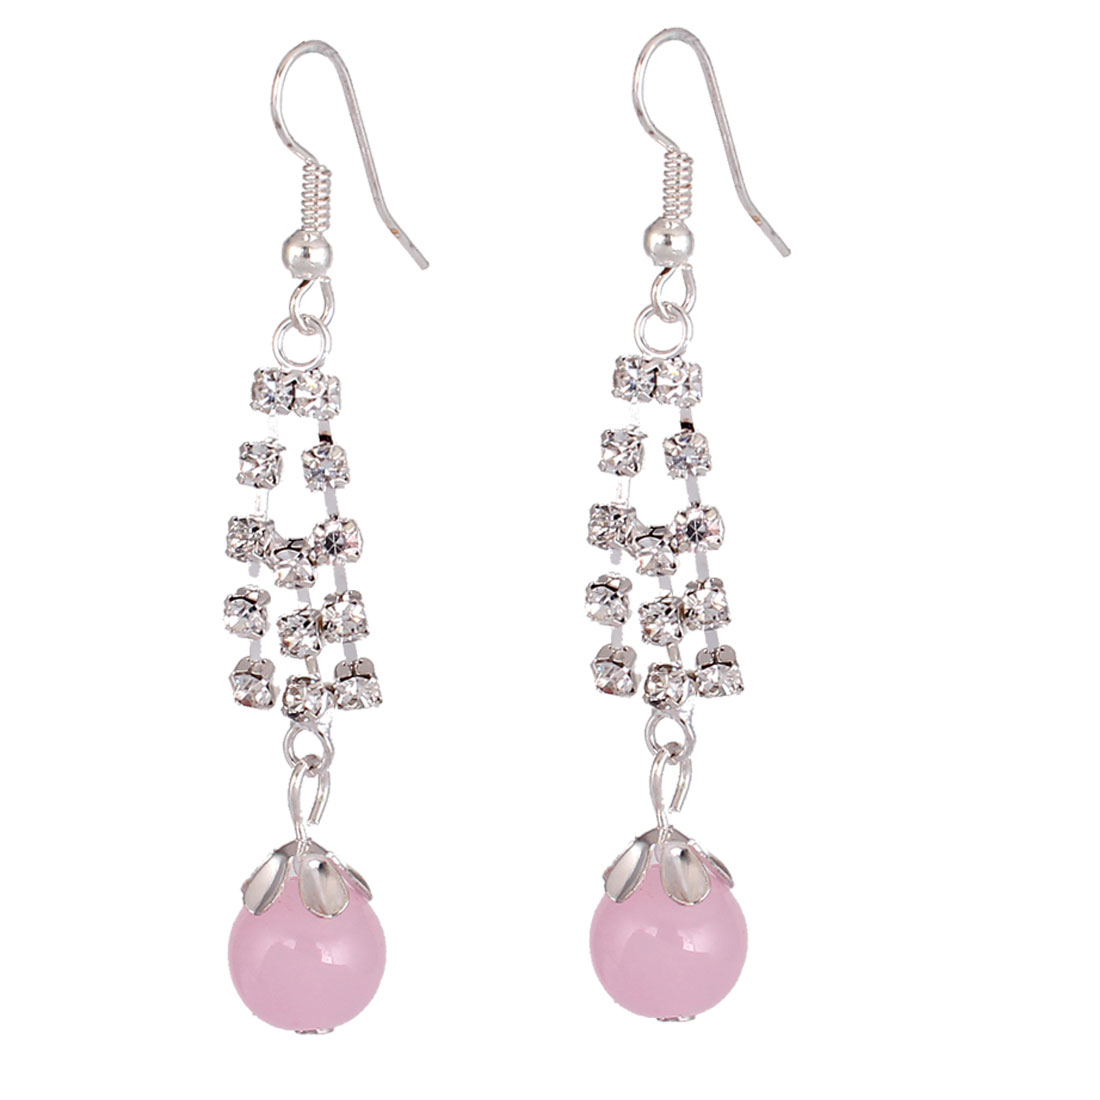 Pair Pink Round Beads Sparkly Rhinestone Inlaid Decor Ear Hook Earrings for Women